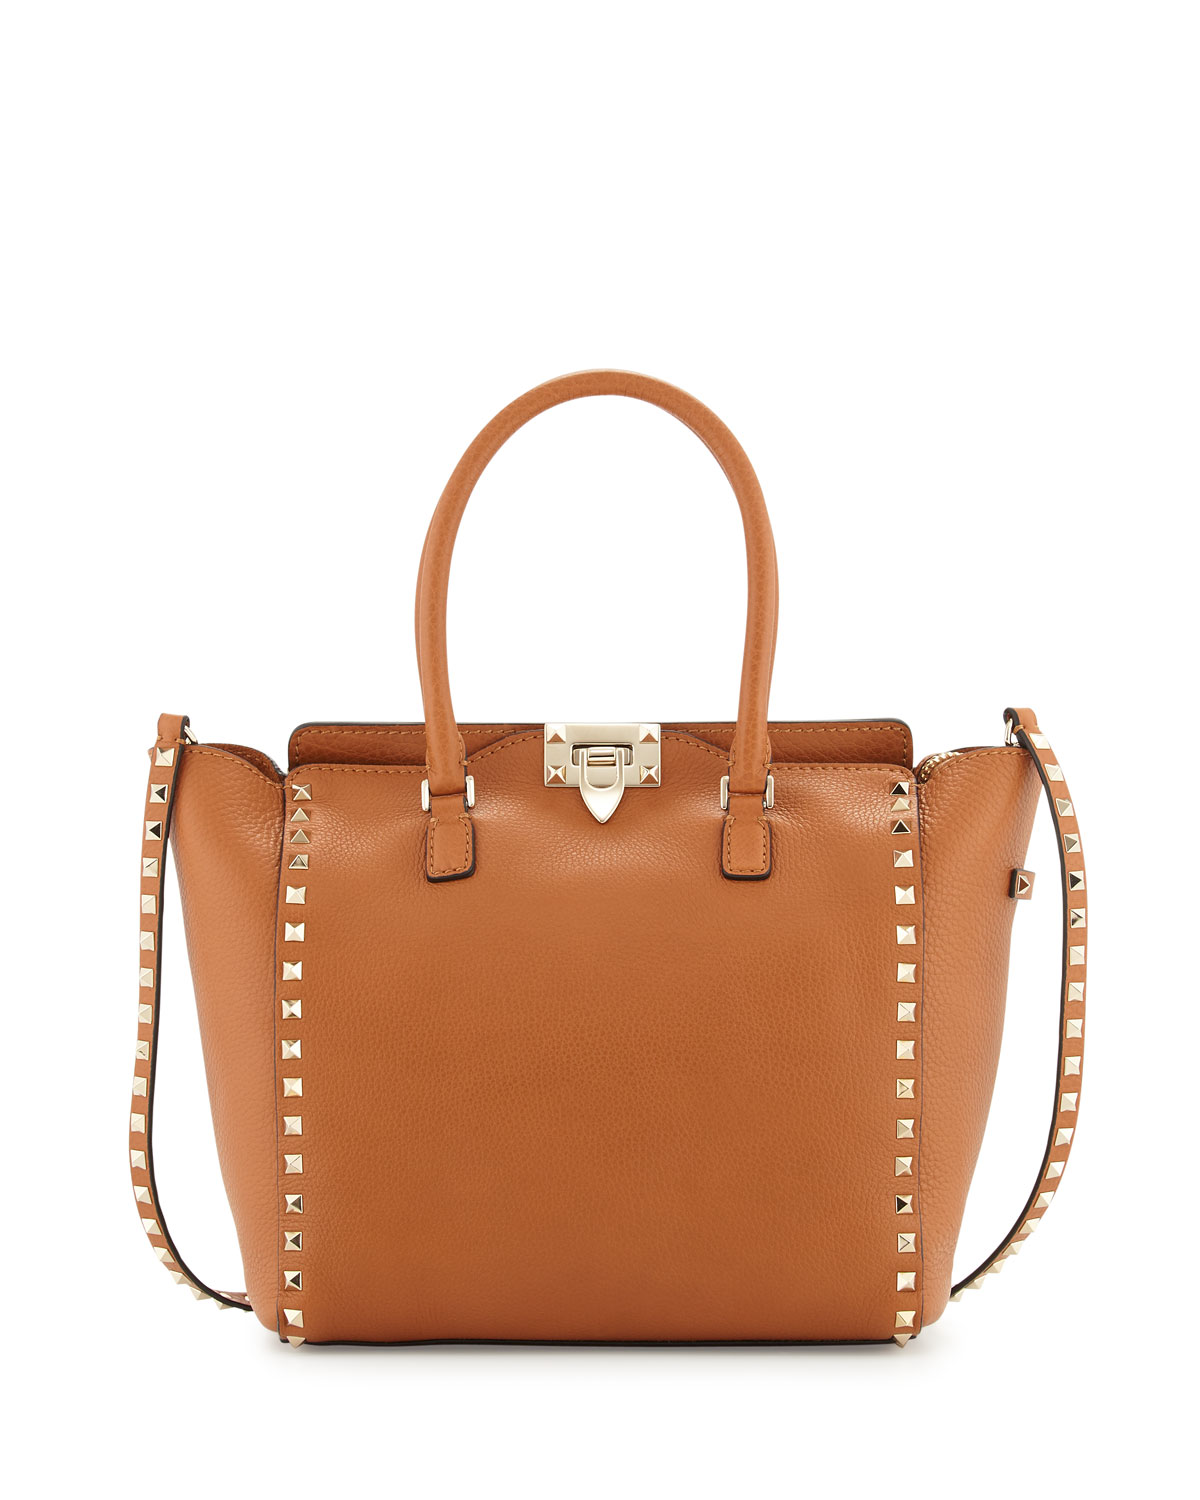 Rockstud Medium Grain Leather Shopper Tote Bag, Tan - Valentino